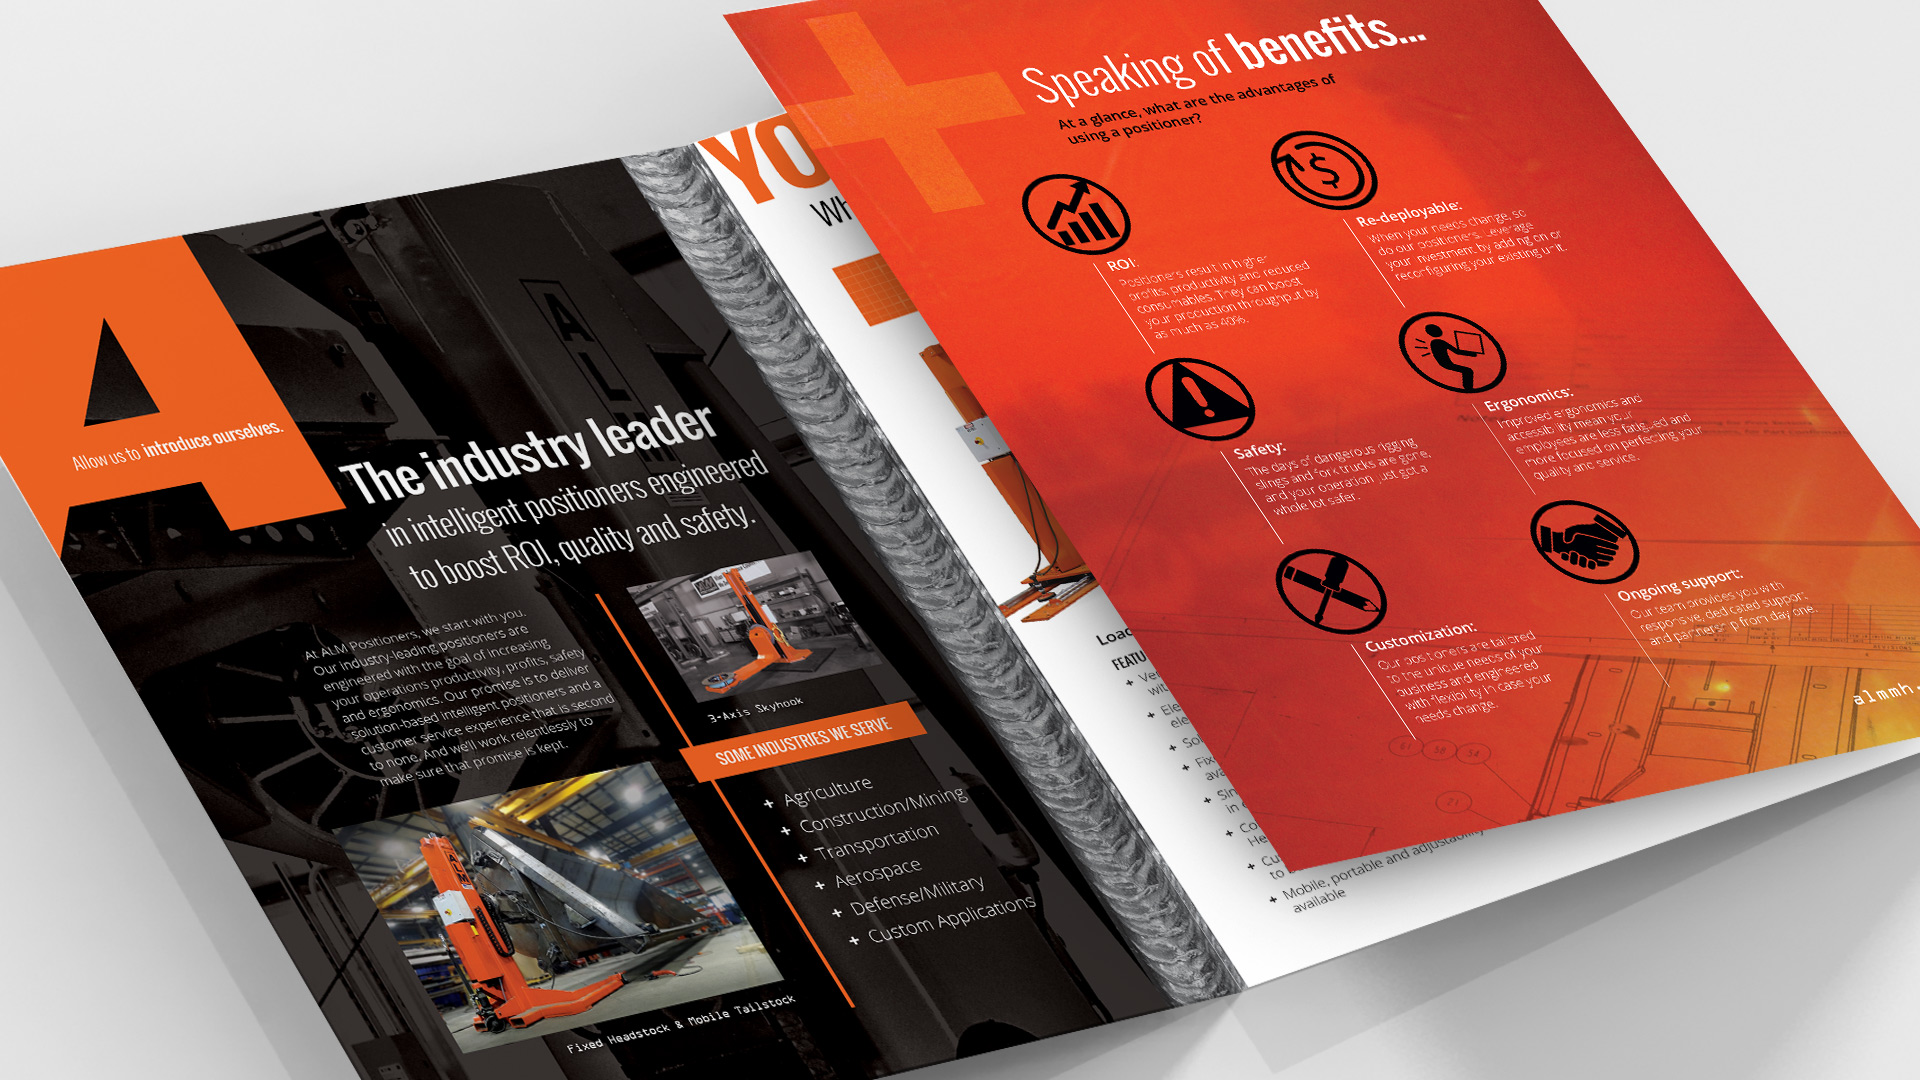 ALM sales brochure with clear visual identity